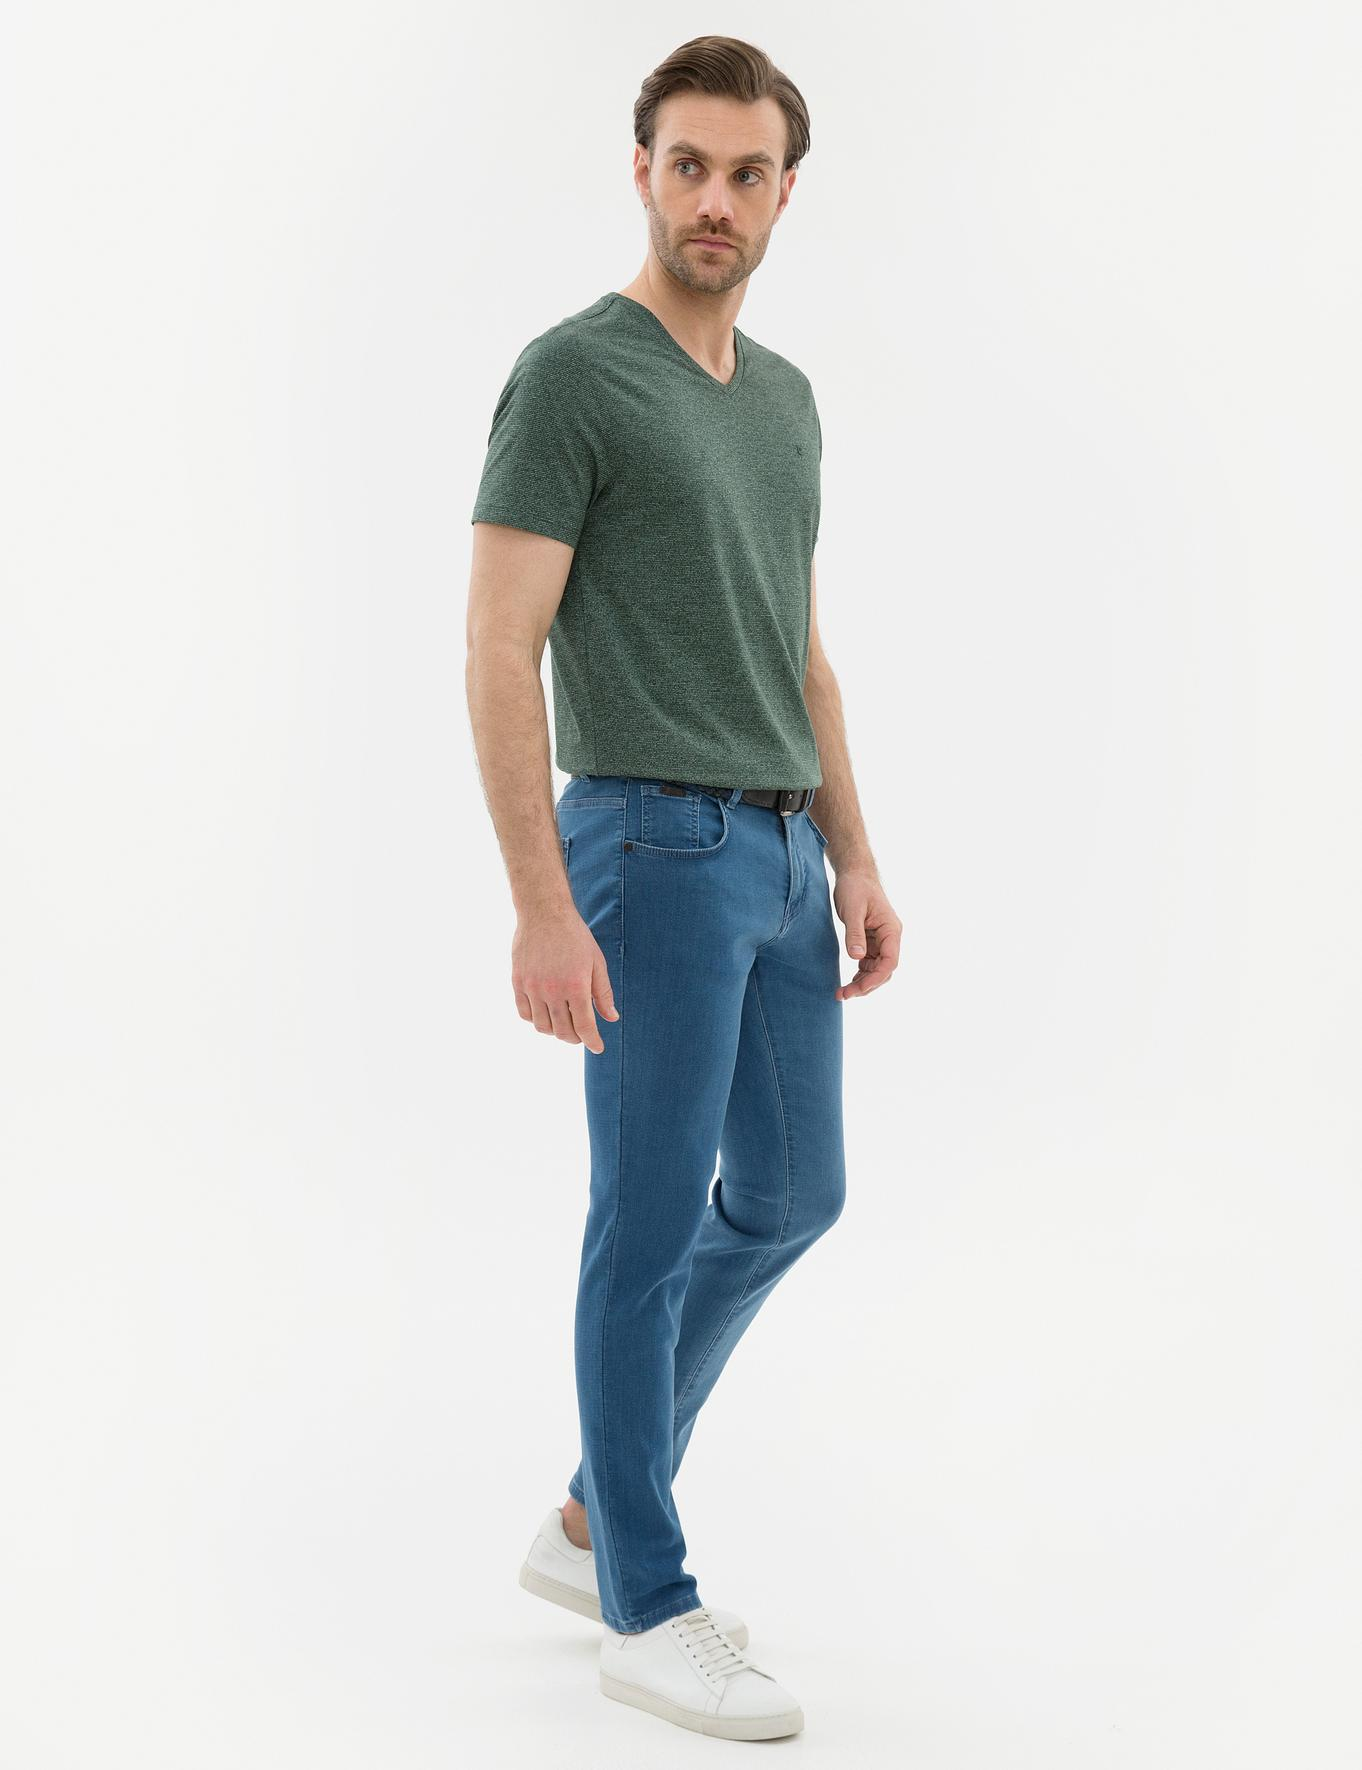 Mavi Slim Fit Denim Pantolon